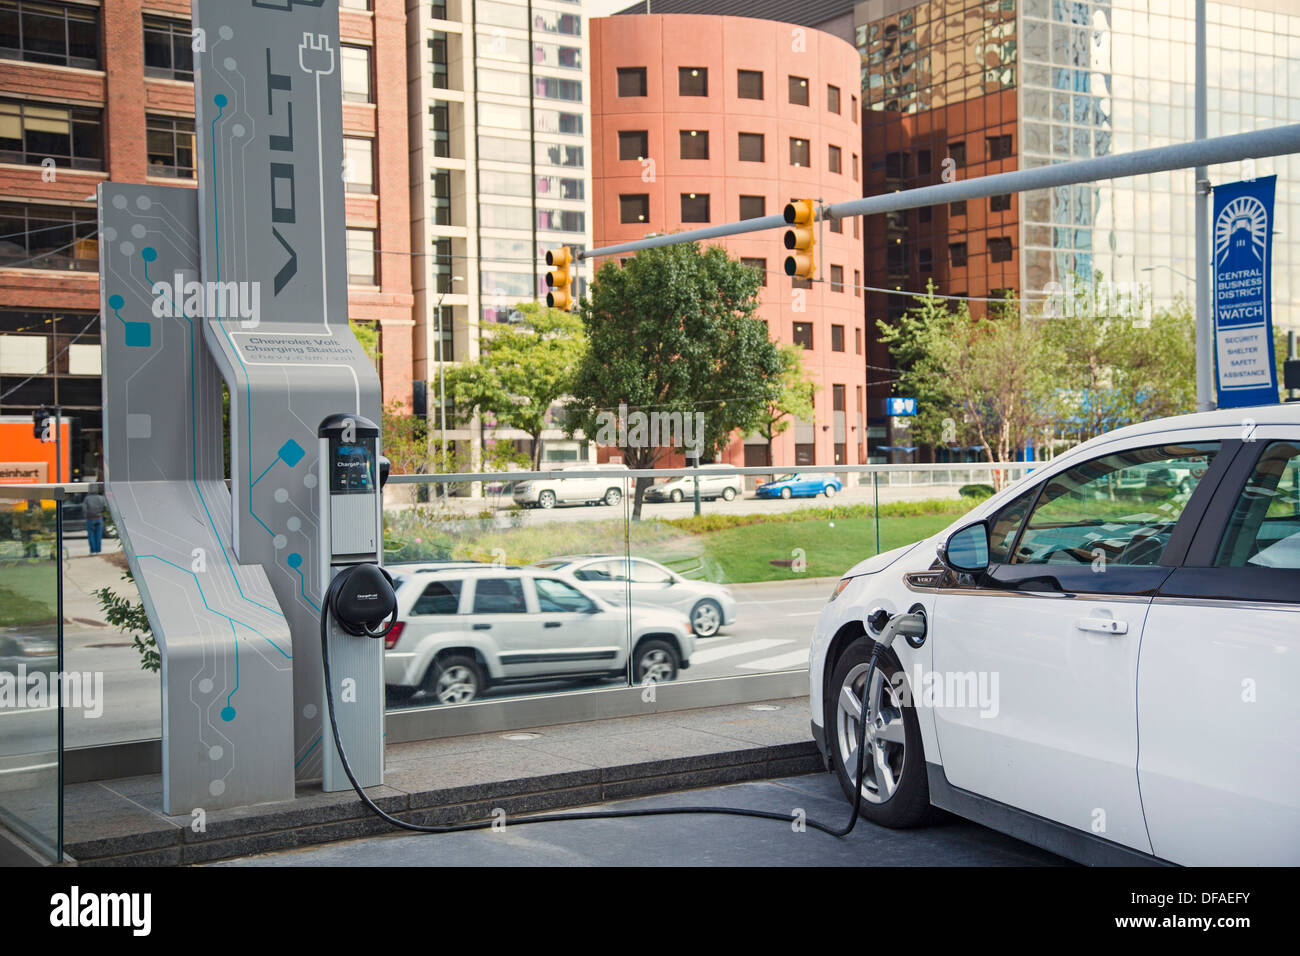 A Chevrolet Volt electric car plugged in to a charging